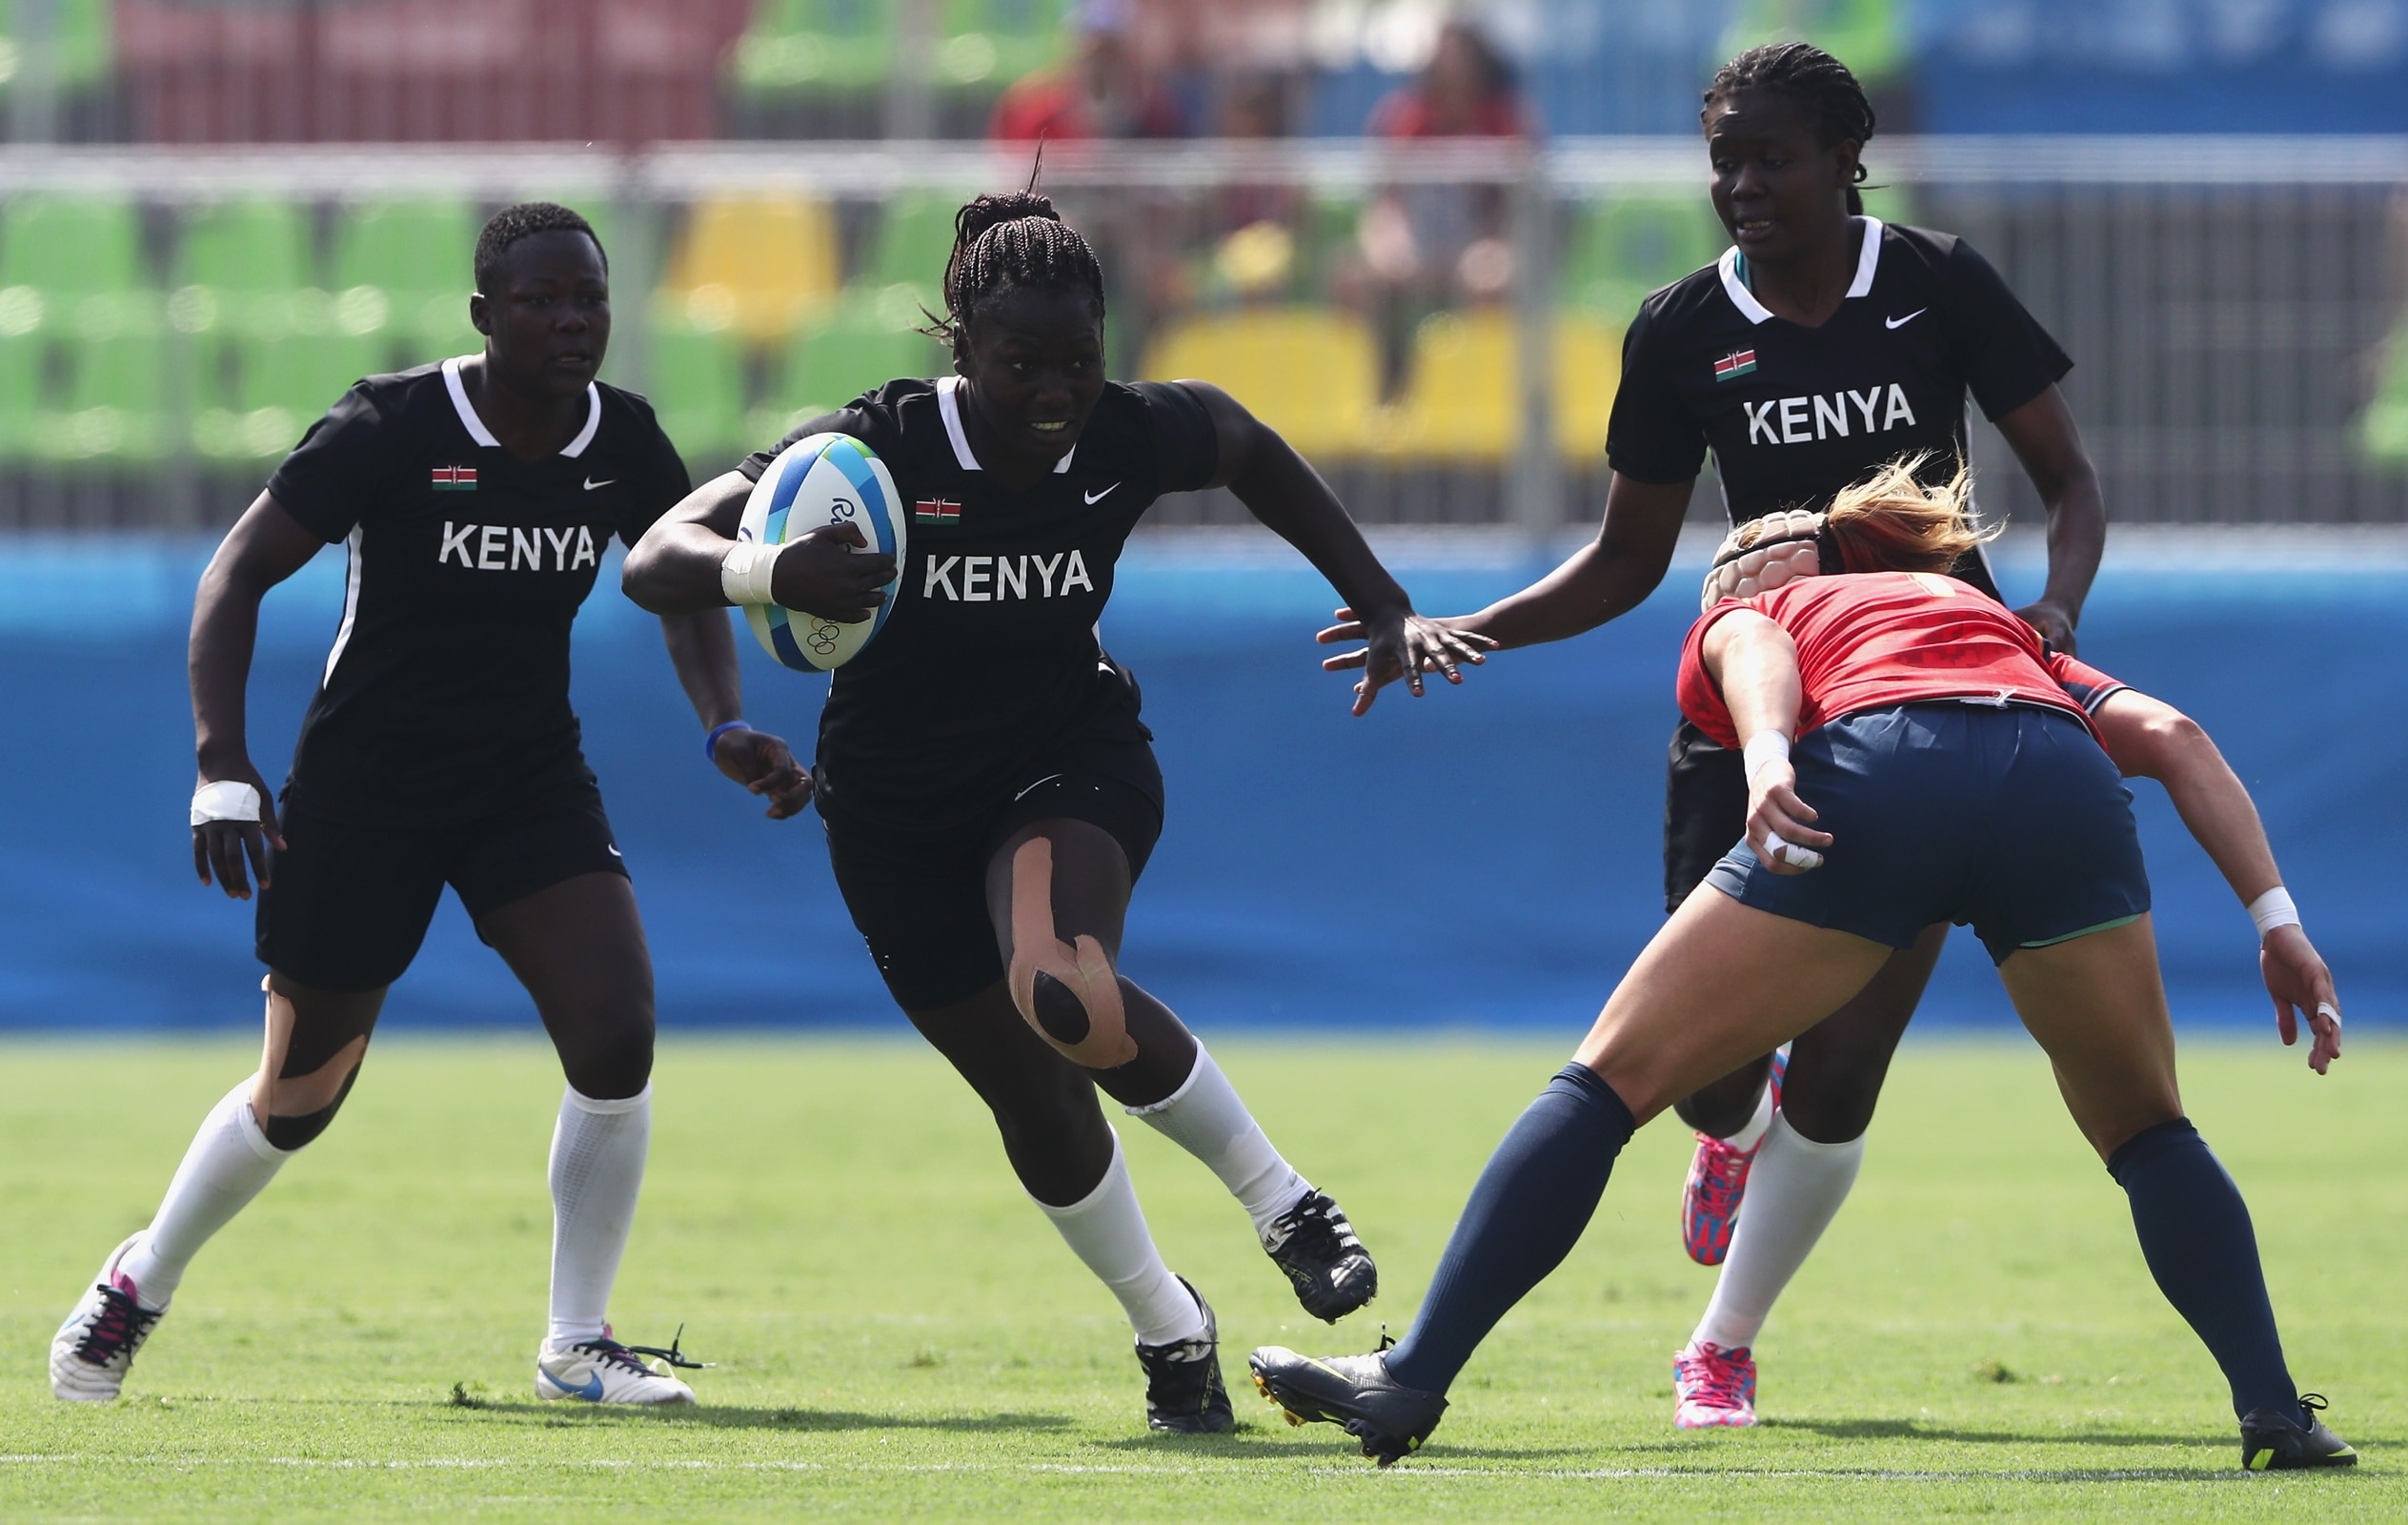 Rugby Women - Kenya VS Spain